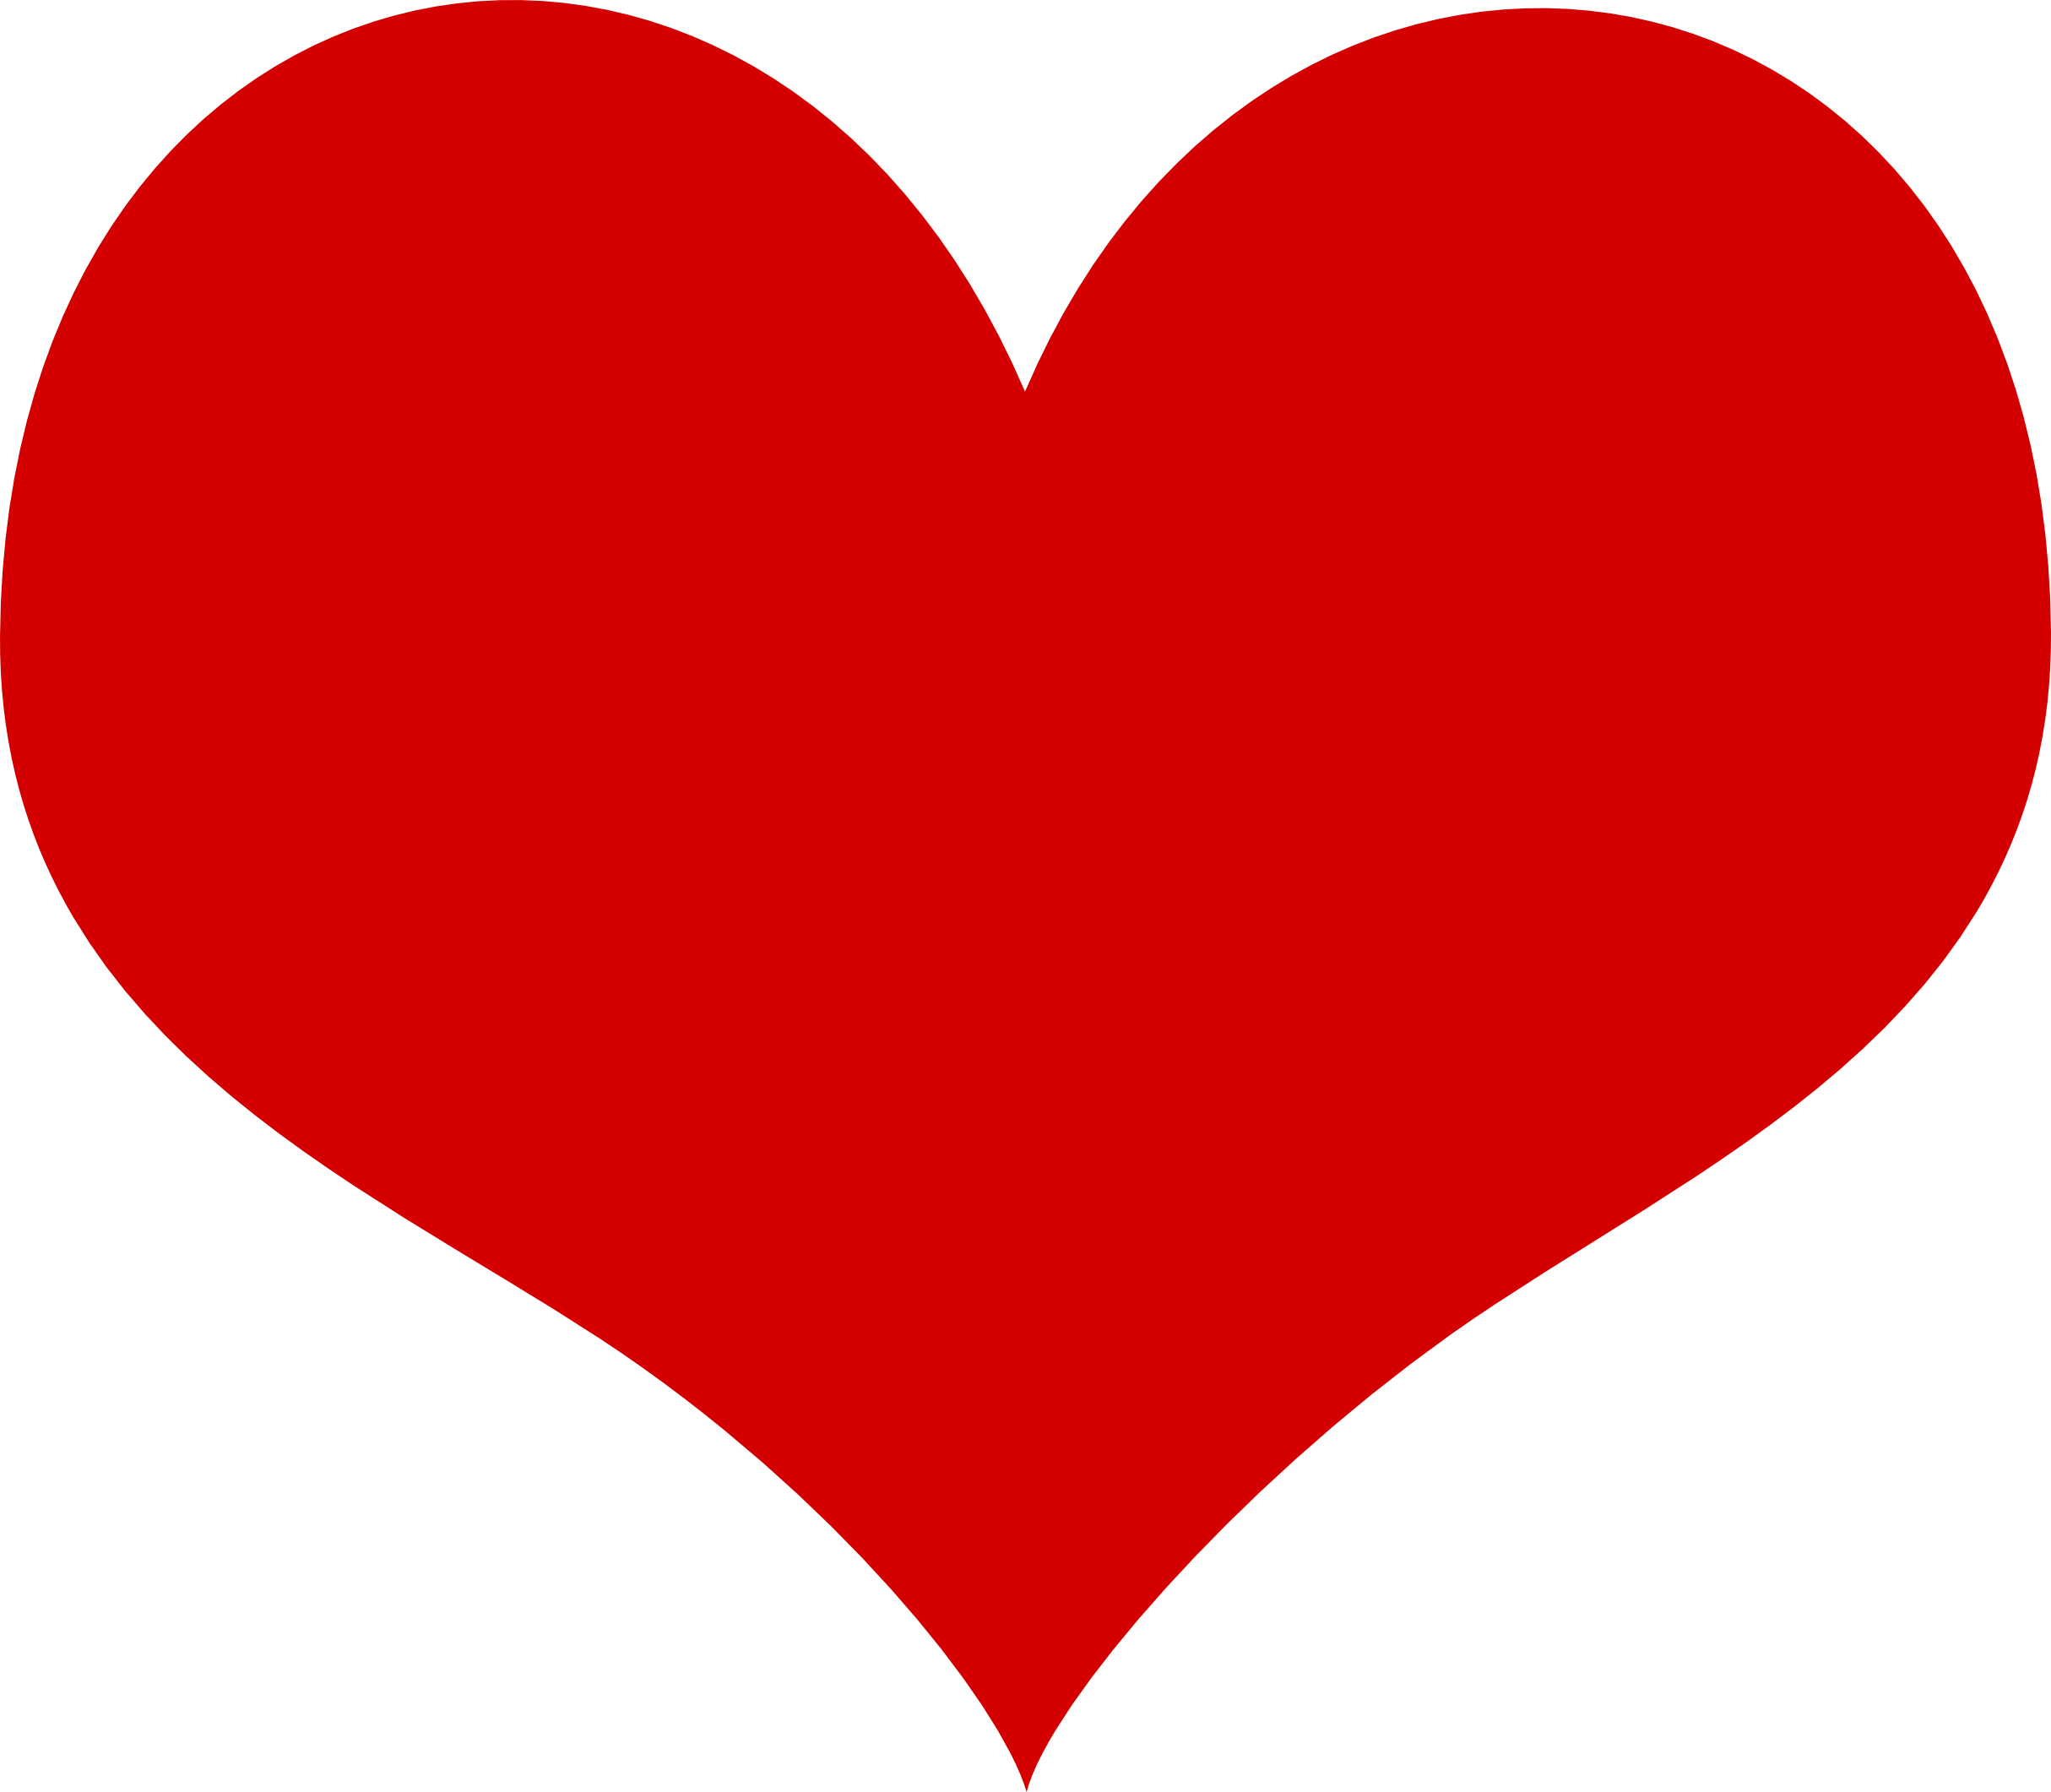 Heart Designs Clipart; Can .-Heart Designs Clipart; Can .-1